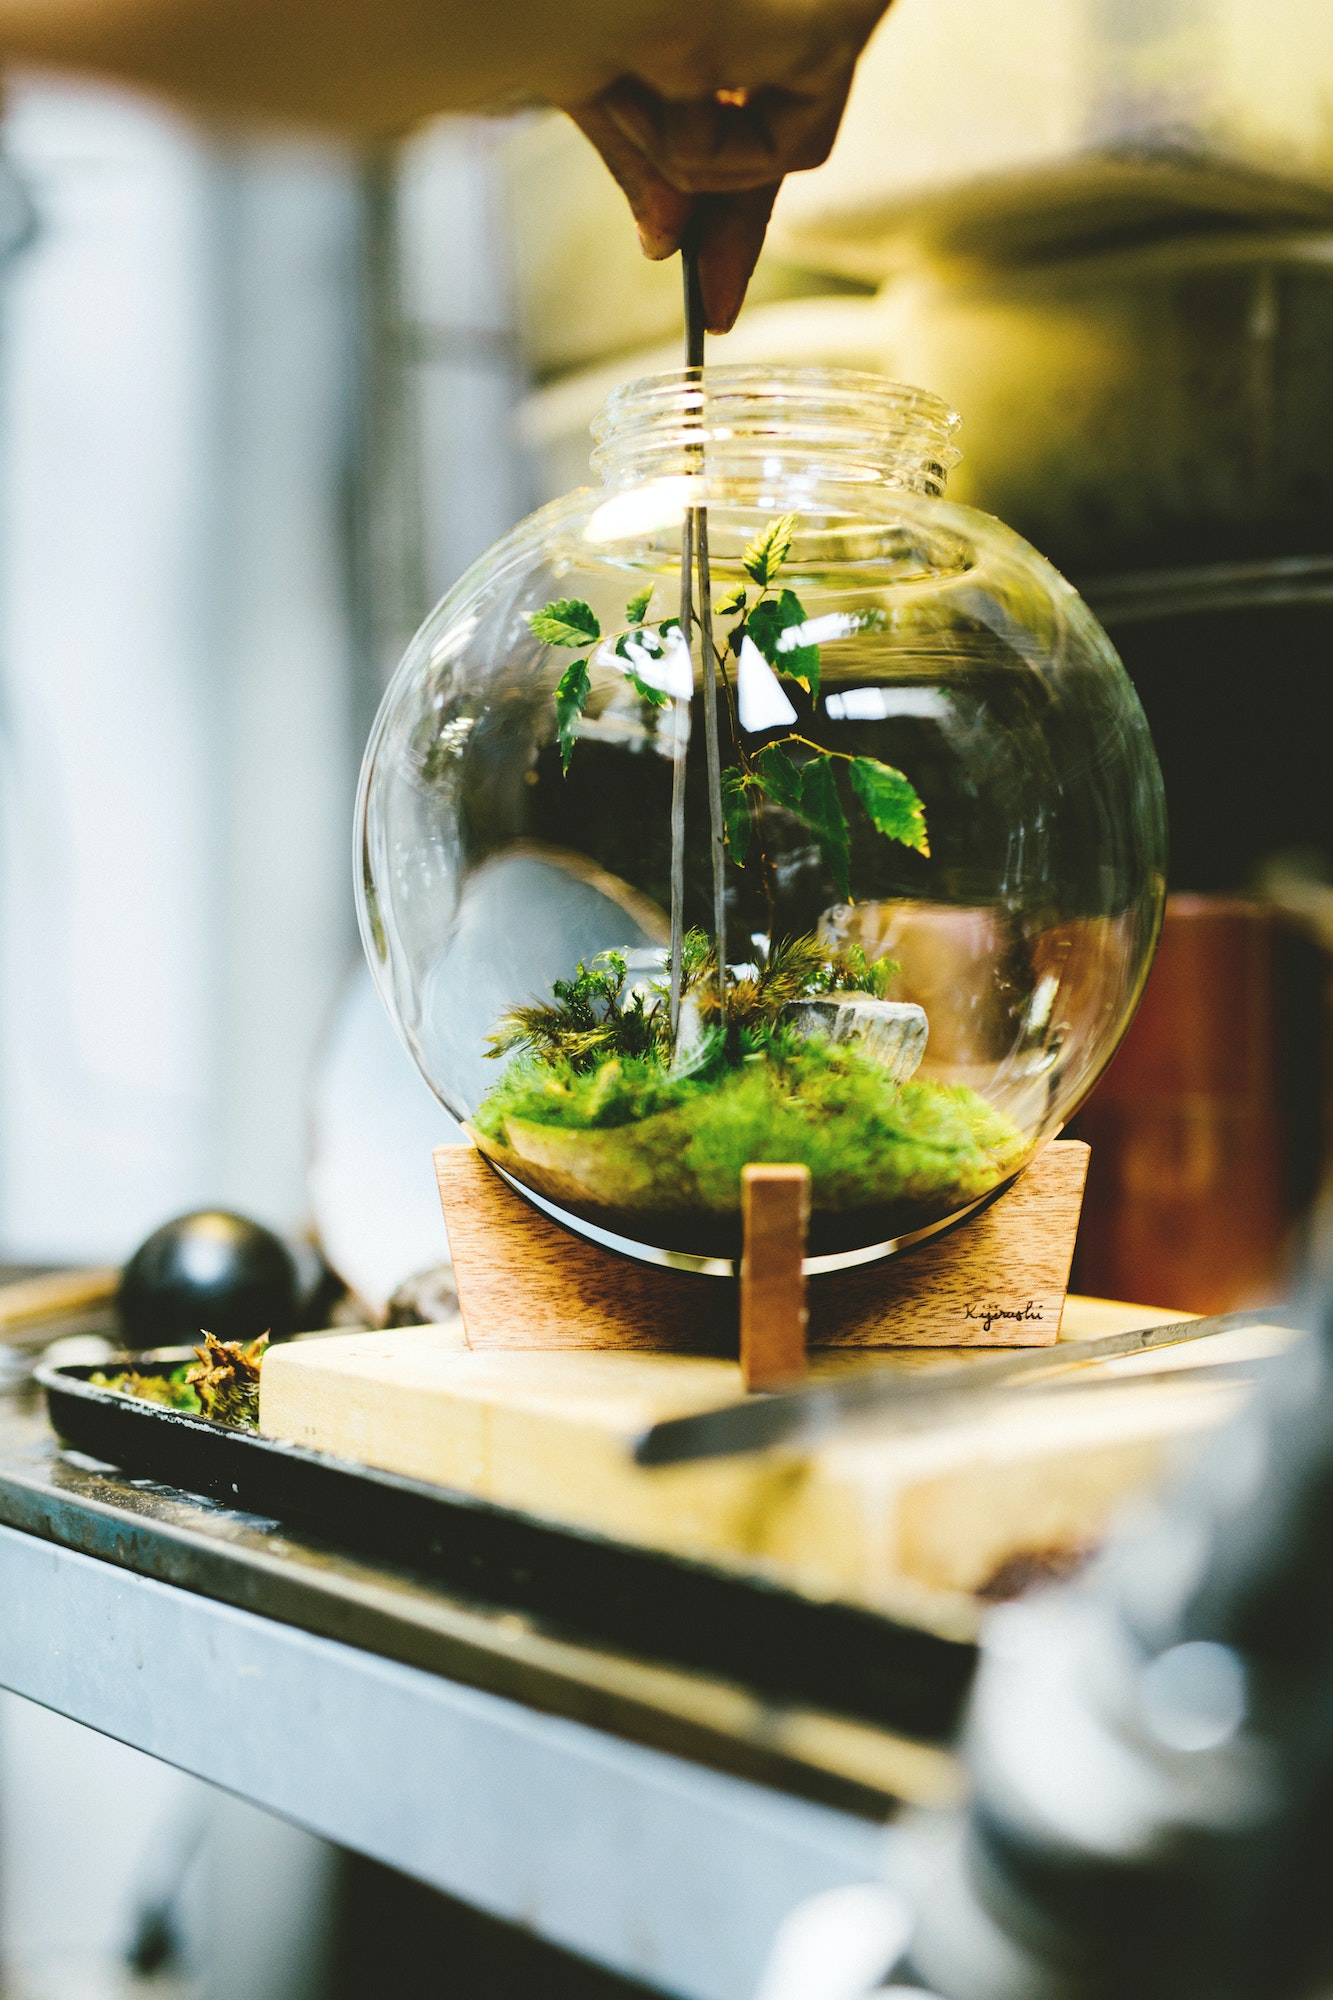 Murase Takaaki creatively recycles lamp glass, found objects, and foraged and rescued plants to make his SpaceColony terrariums at Re:planter.